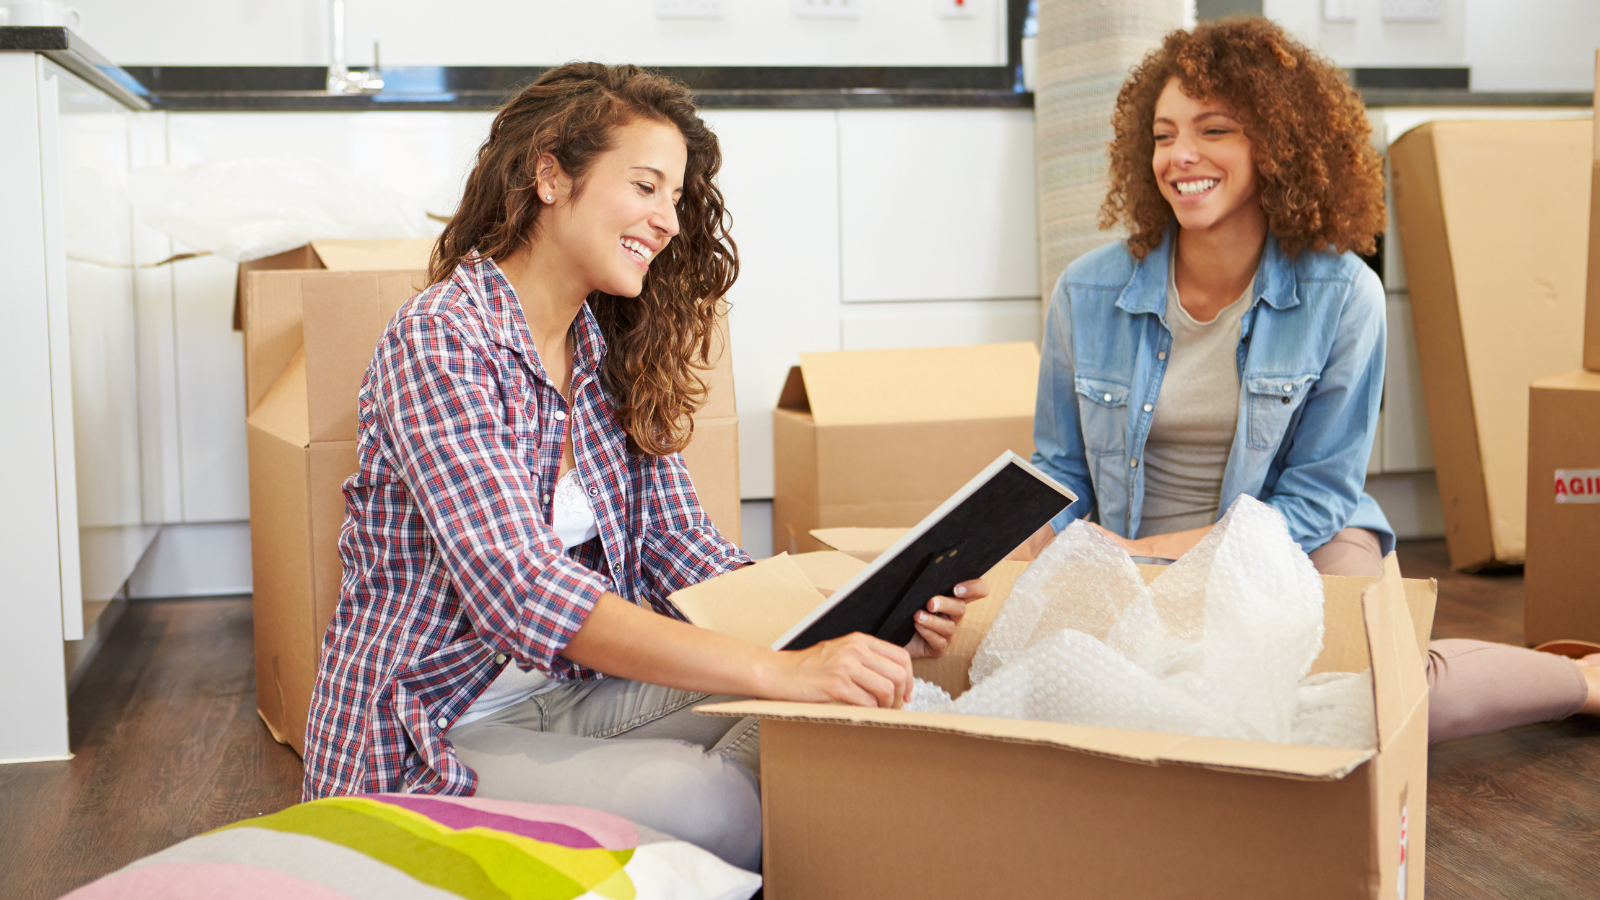 Two women sharing a laugh over some packing boxes